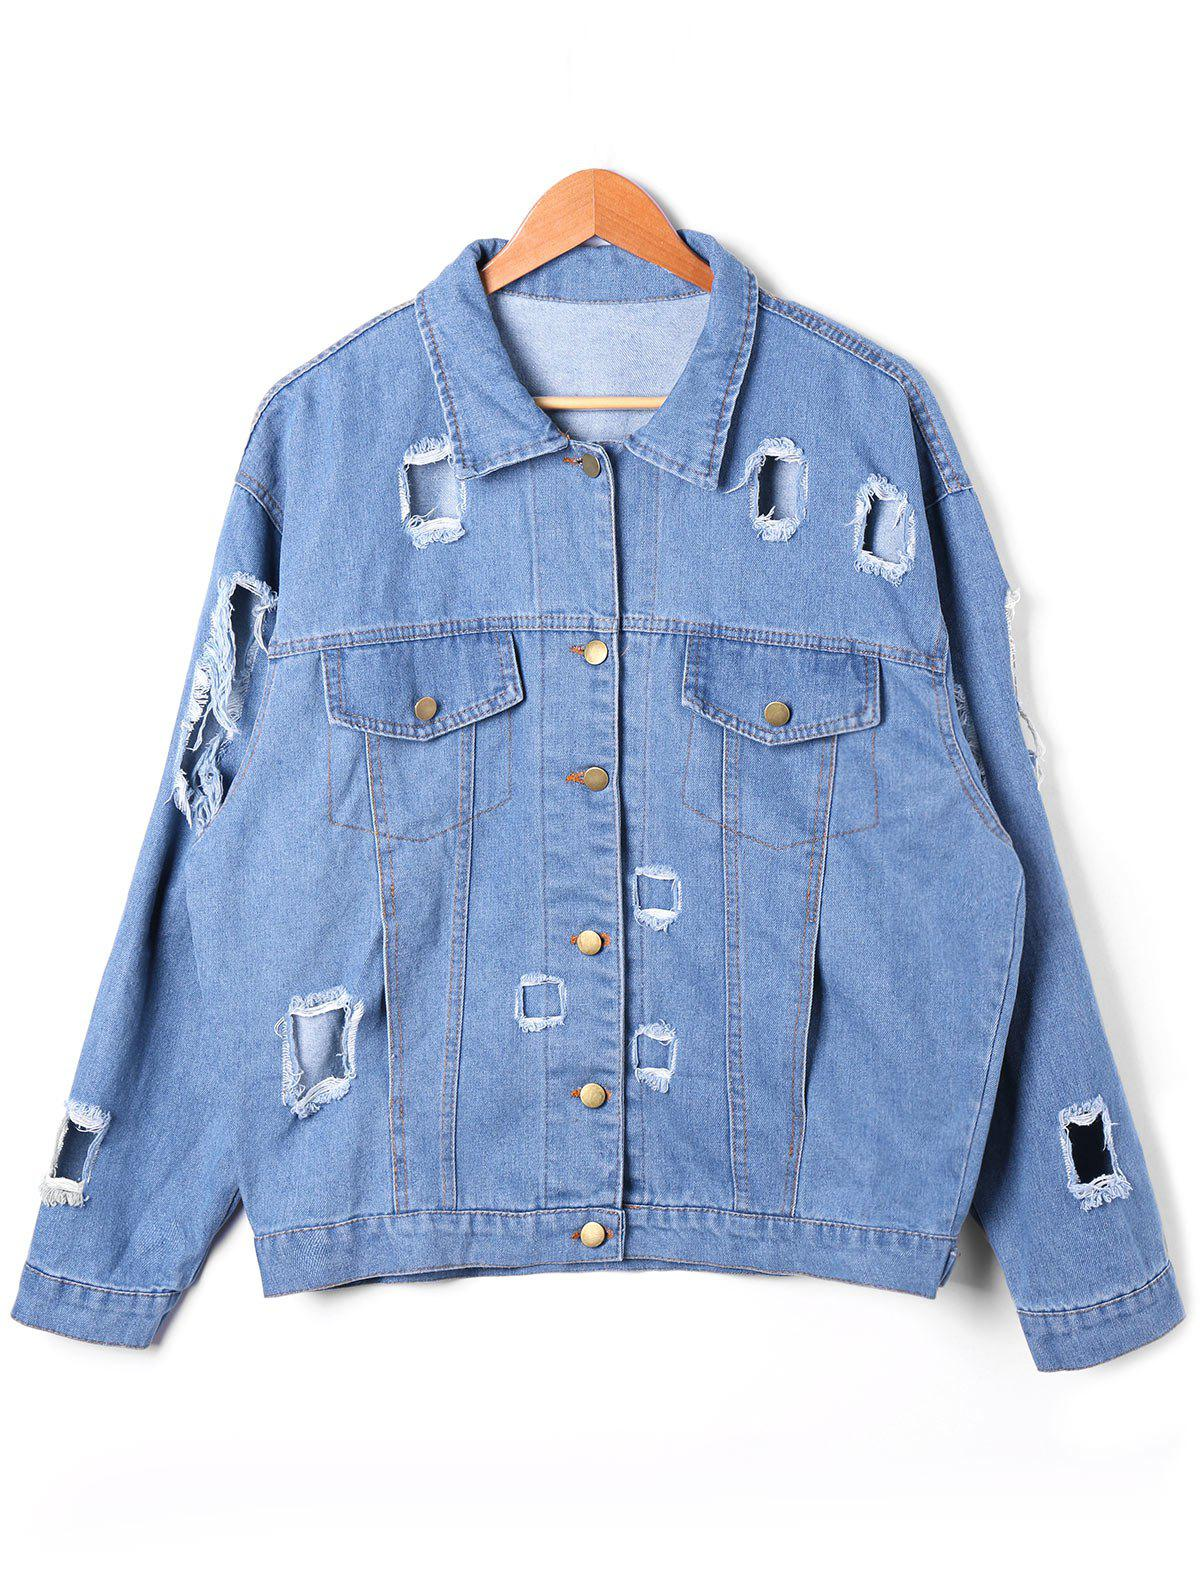 Shop Flap Pockets Holes Denim Jacket